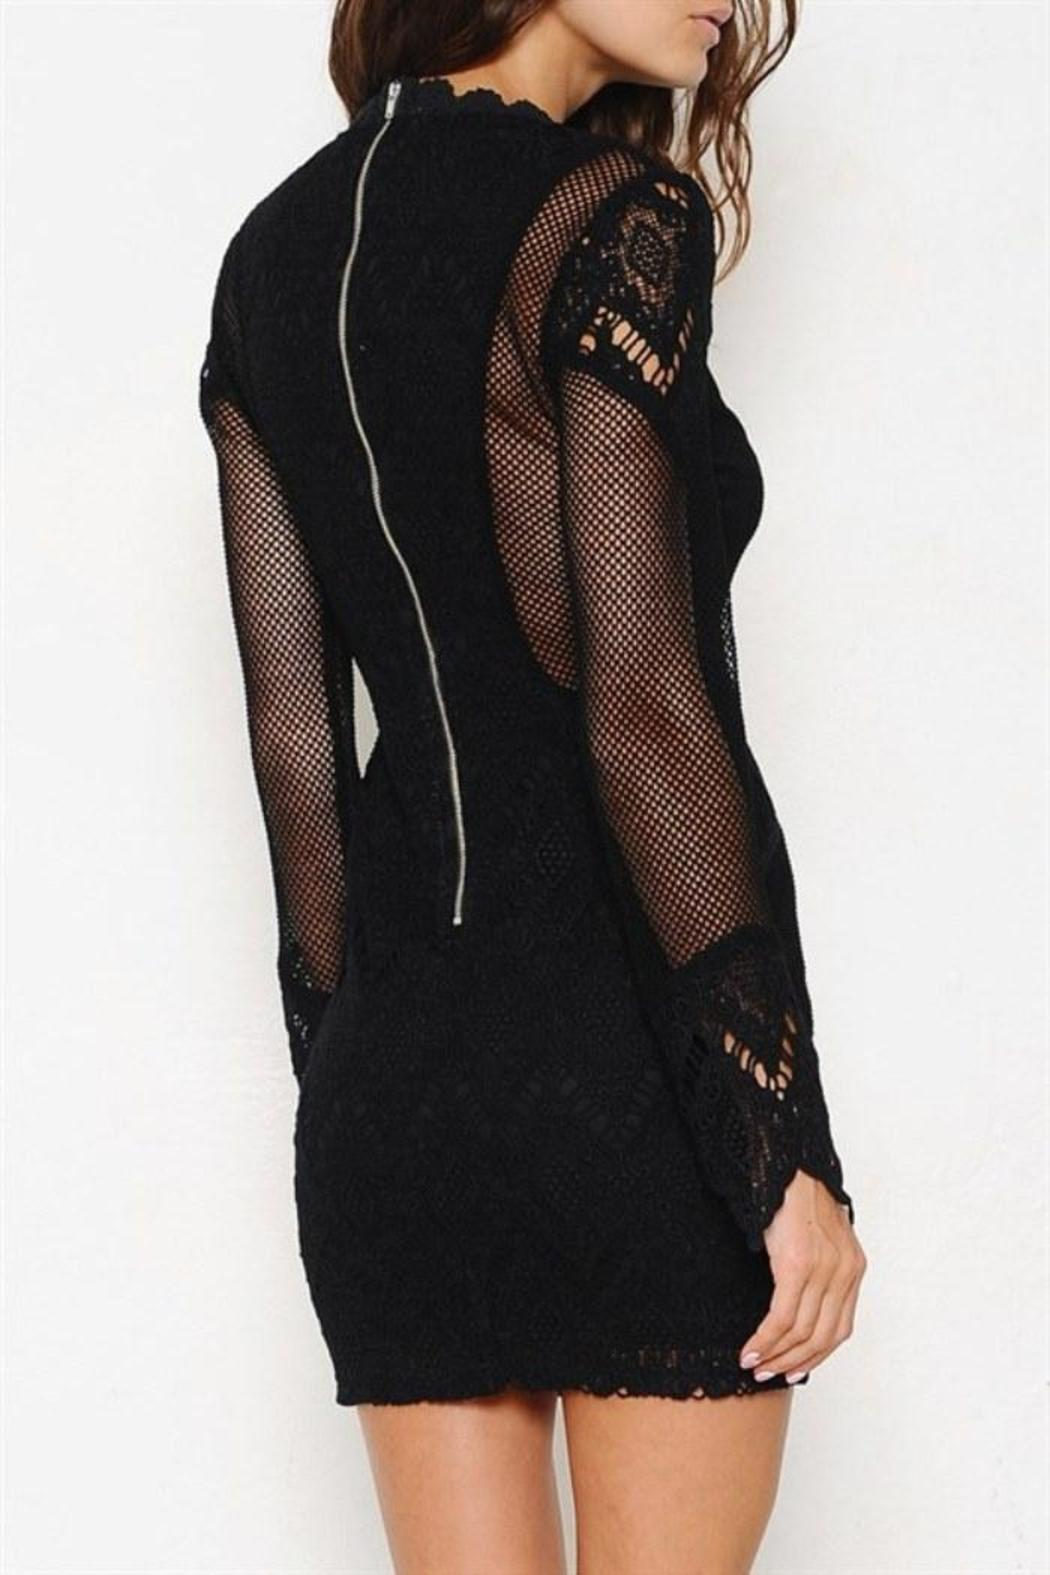 Latiste by AMY Sheer Mesh Dress - Side Cropped Image